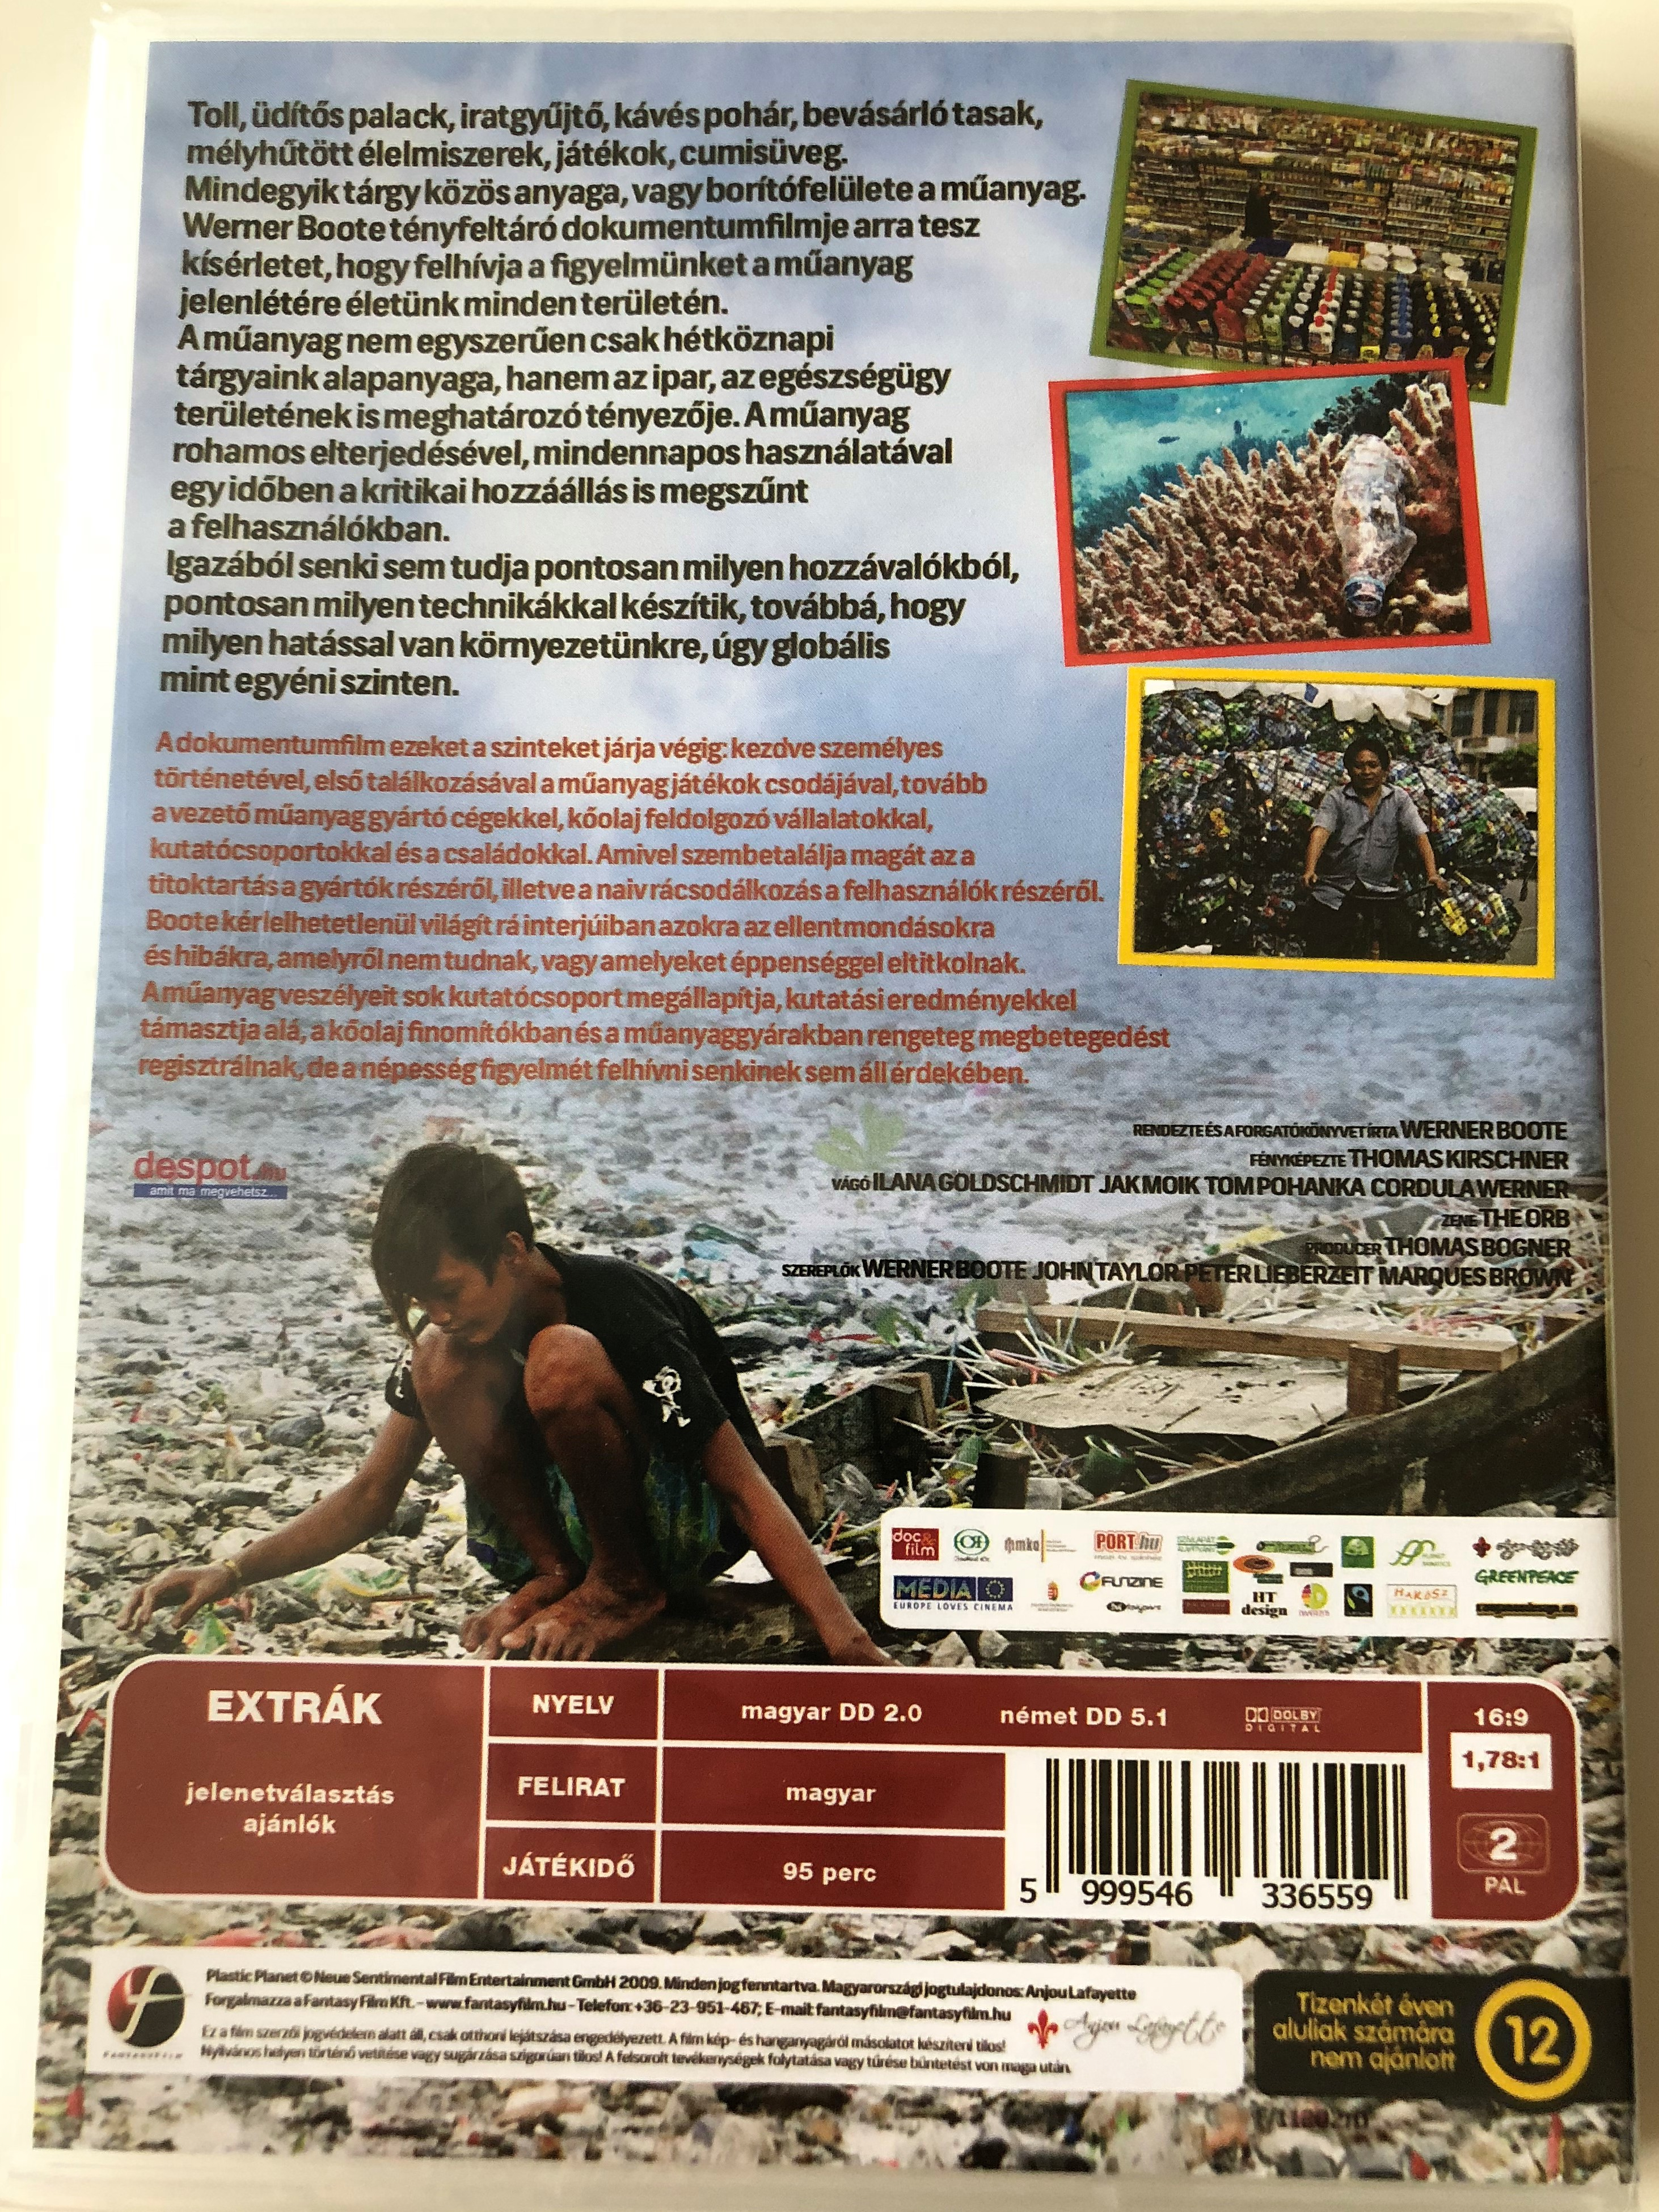 plastic-planet-dvd-2014-f-ld-nk-a-m-anyag-bolyg-directed-by-werner-boote-documentary-about-the-dangers-of-plastic-2-.jpg